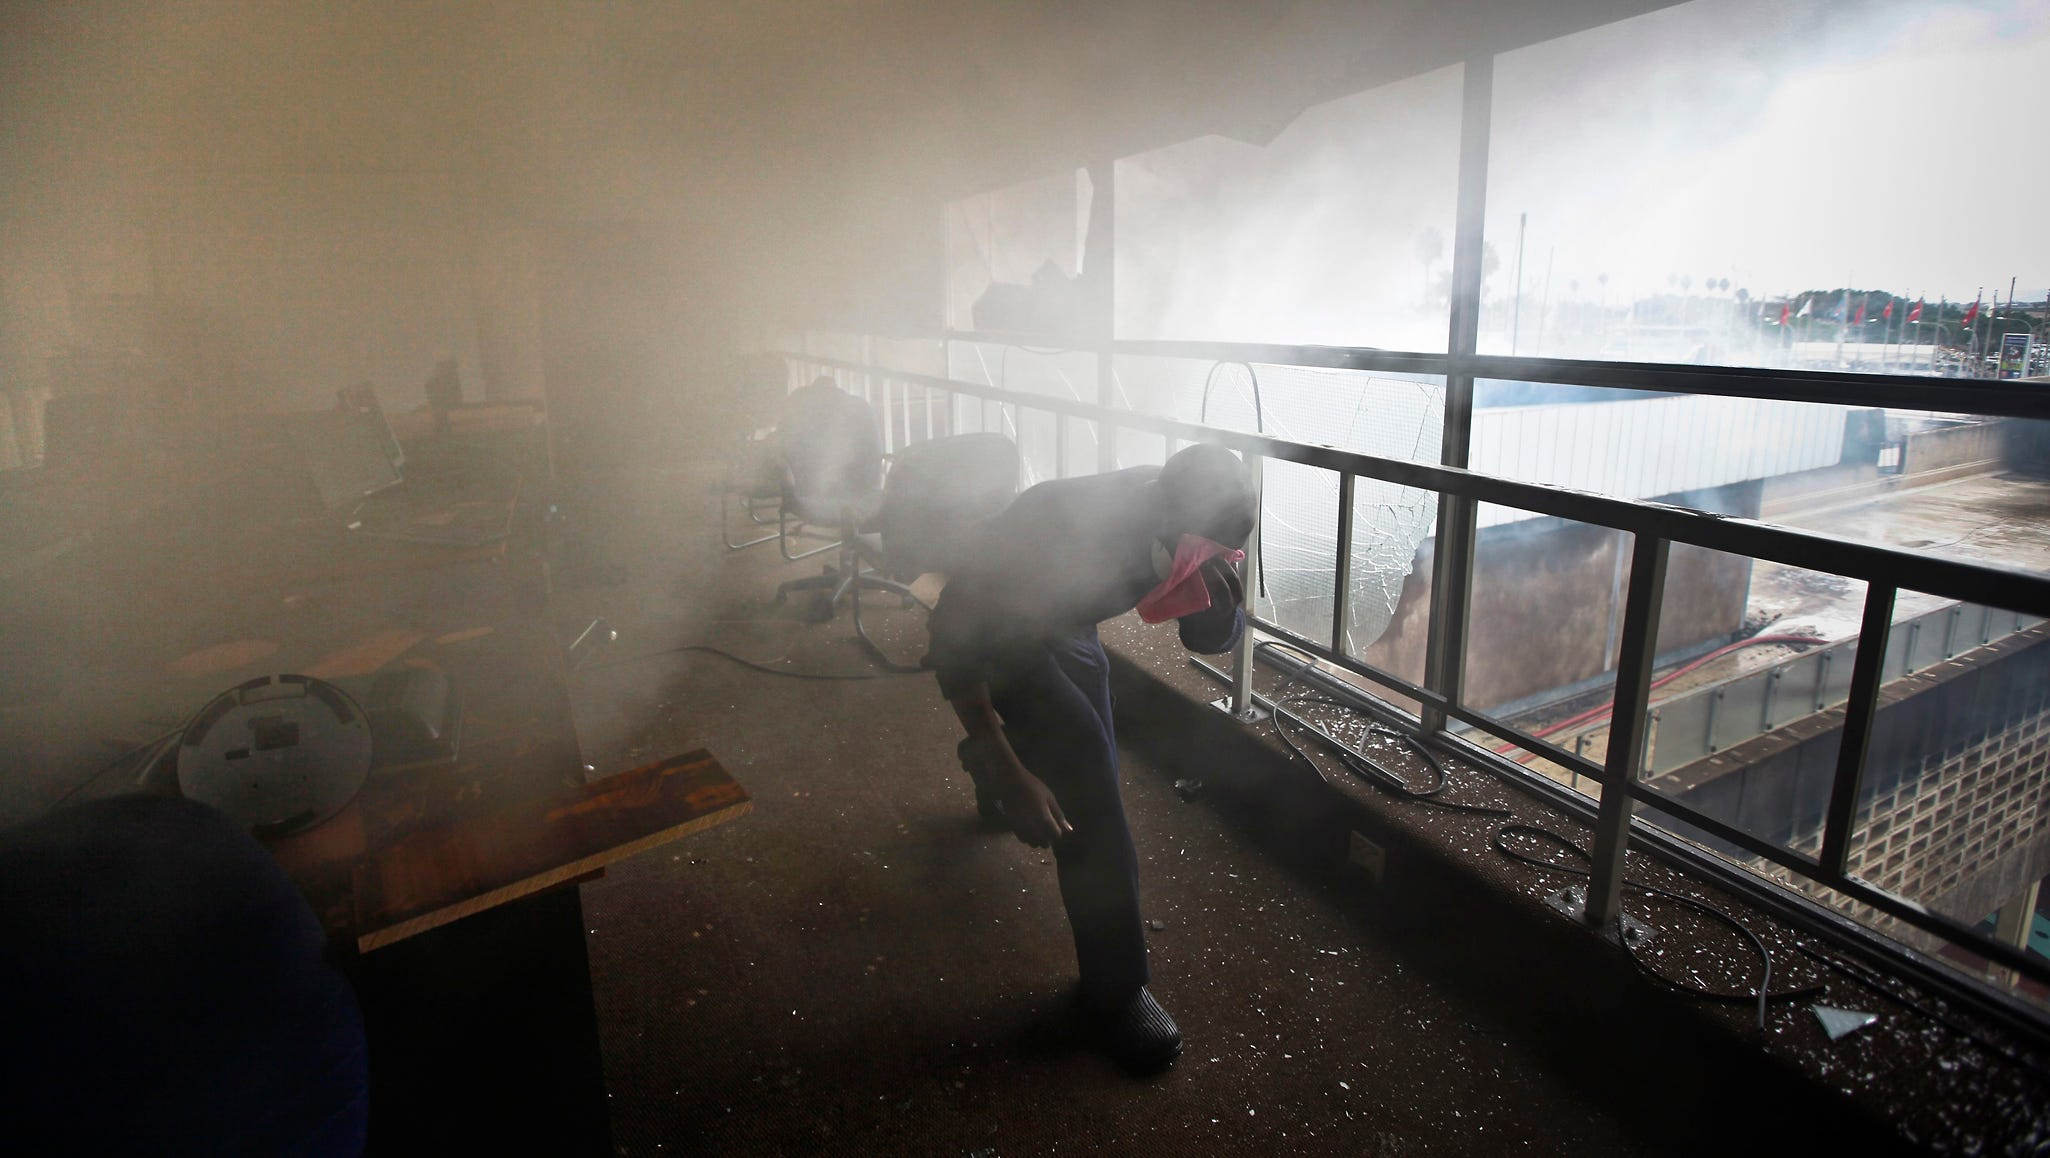 A police officer avoids smoke as he helps firefighters put out a fire at Jomo Kenyatta International Airport. There were no injuries reported.